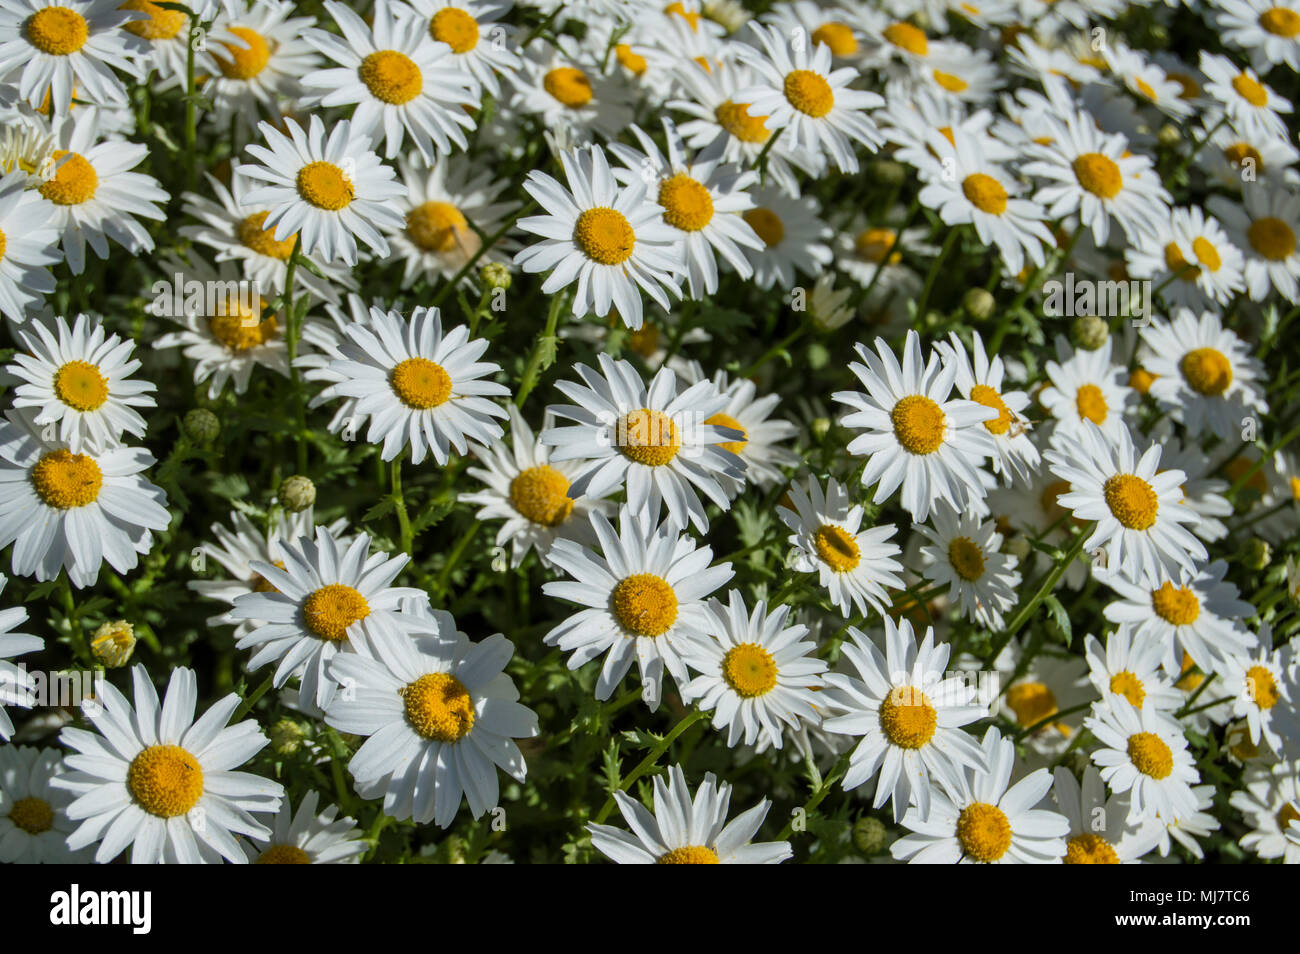 Large Of Daisies Flowers Background In The Spring In The Park In